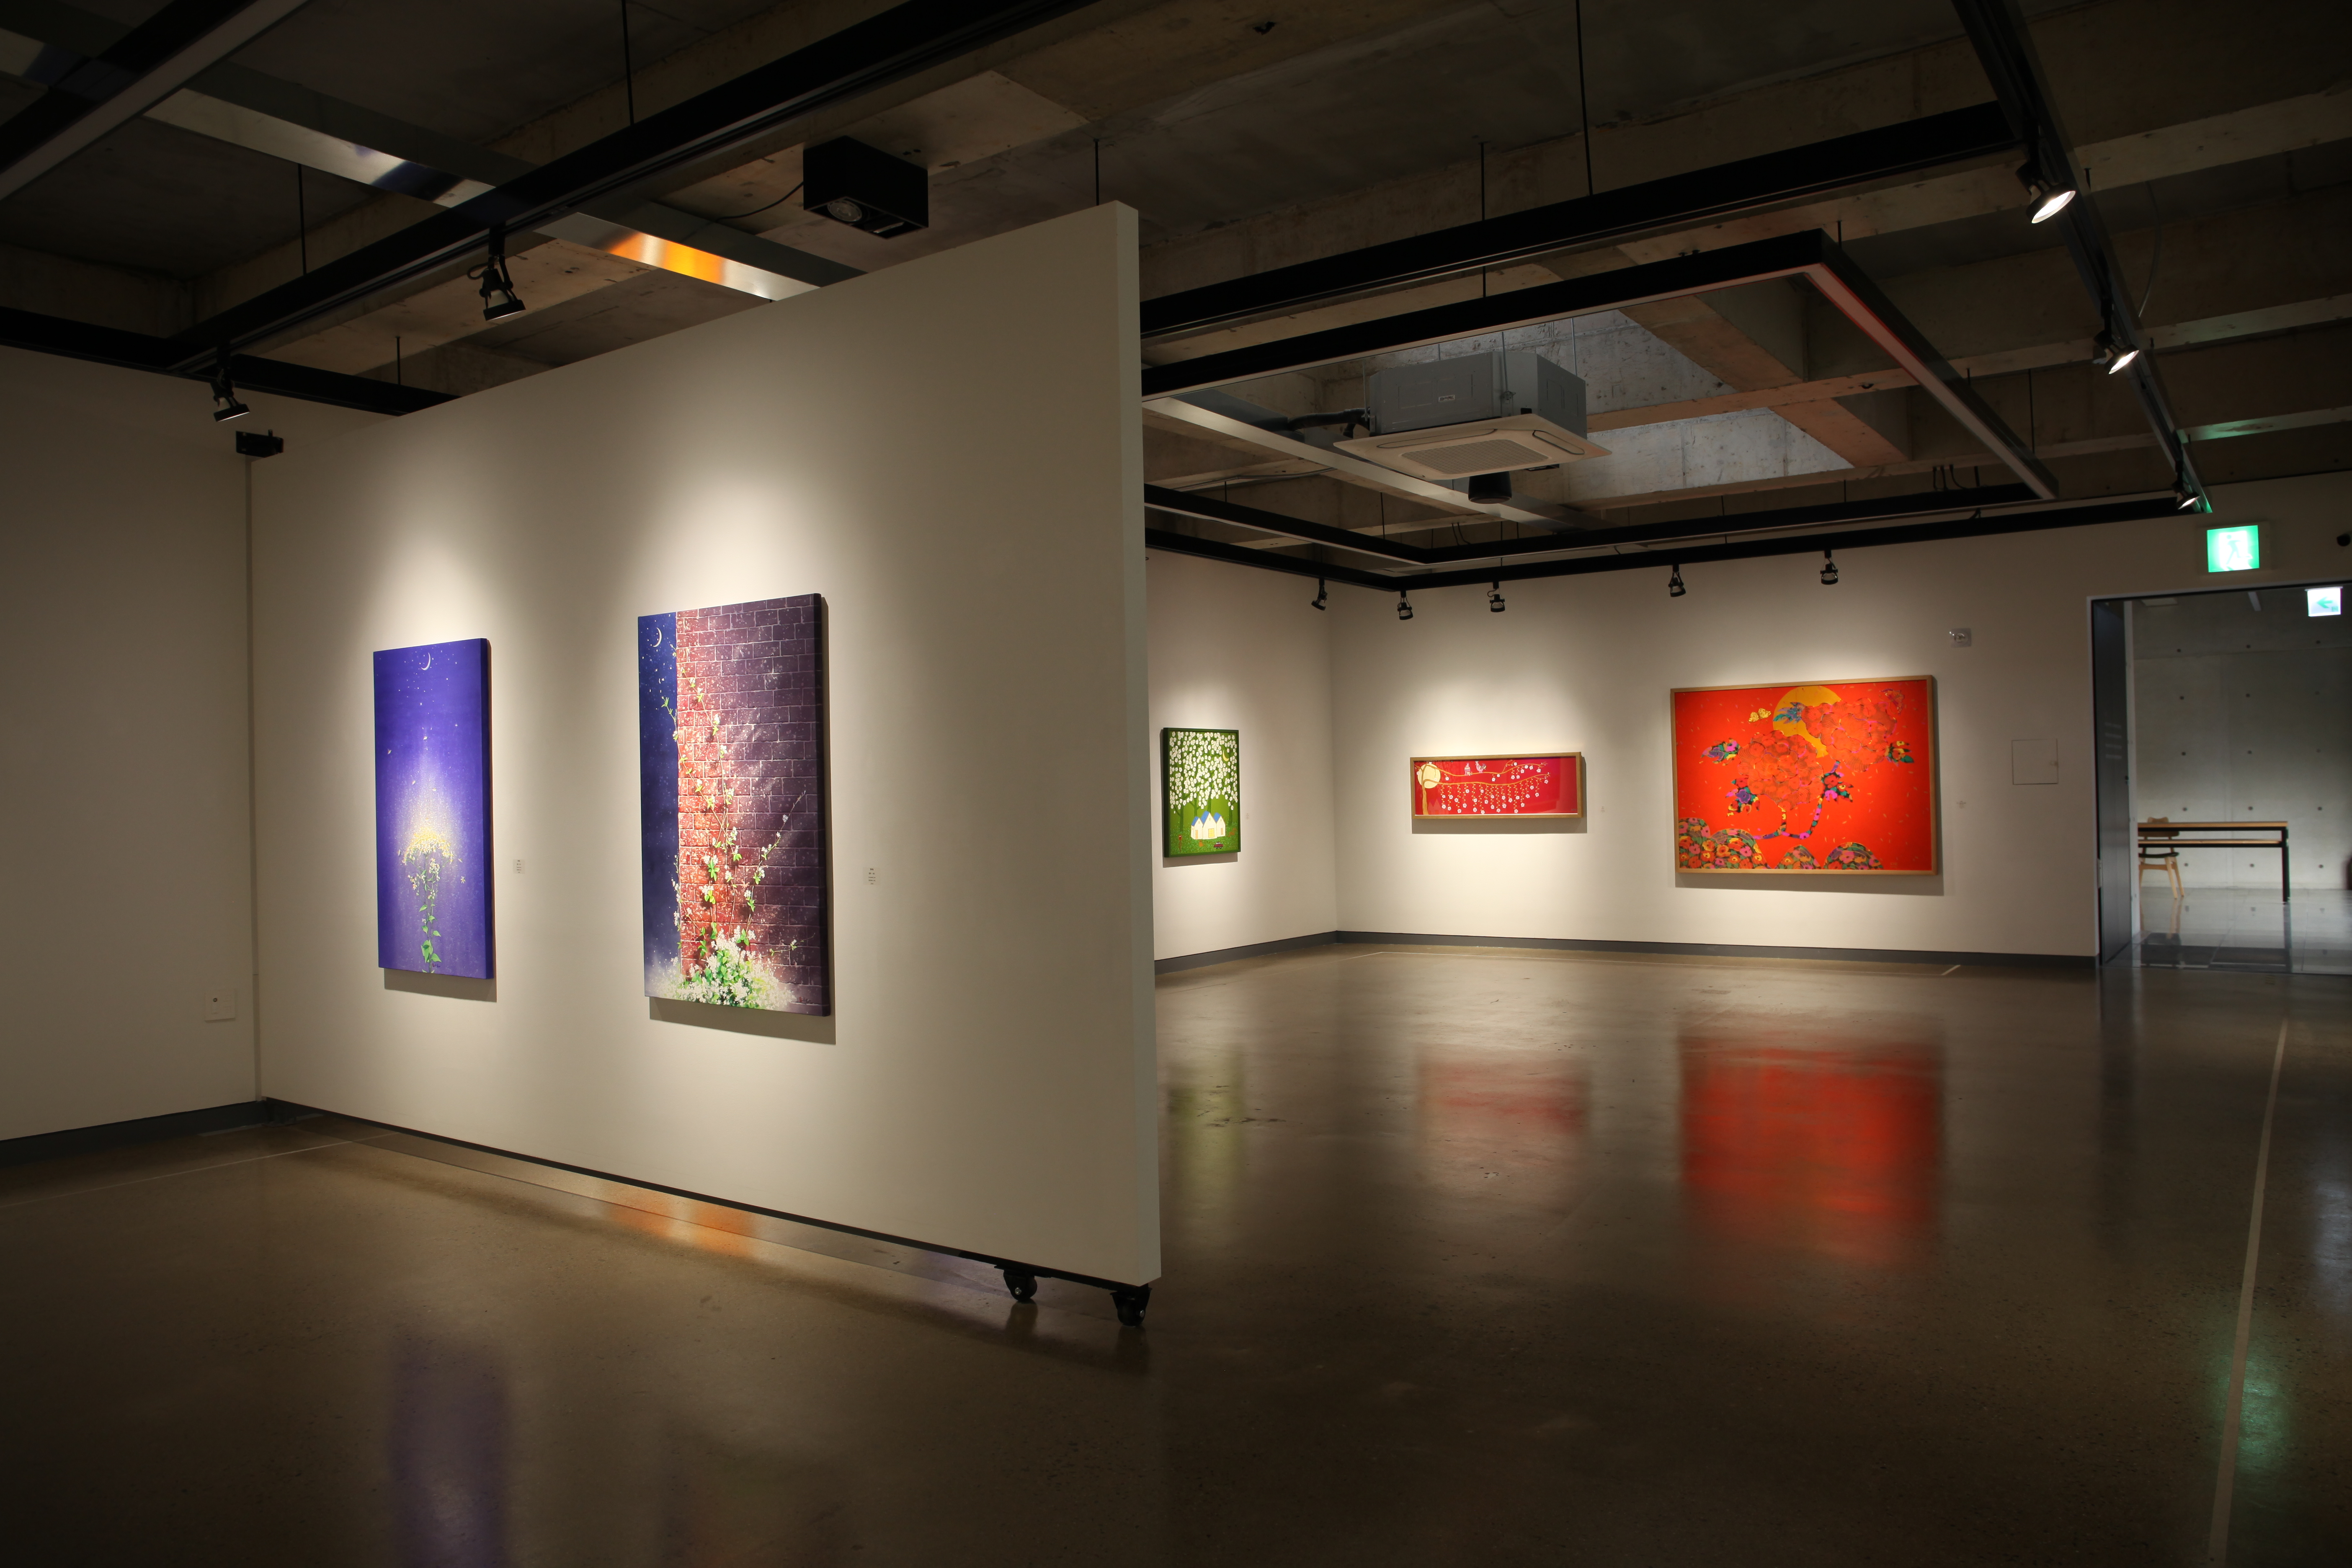 http://deyoungmuseum.co.kr/bs/se2/imgup/1590221805IMG_8528.JPG